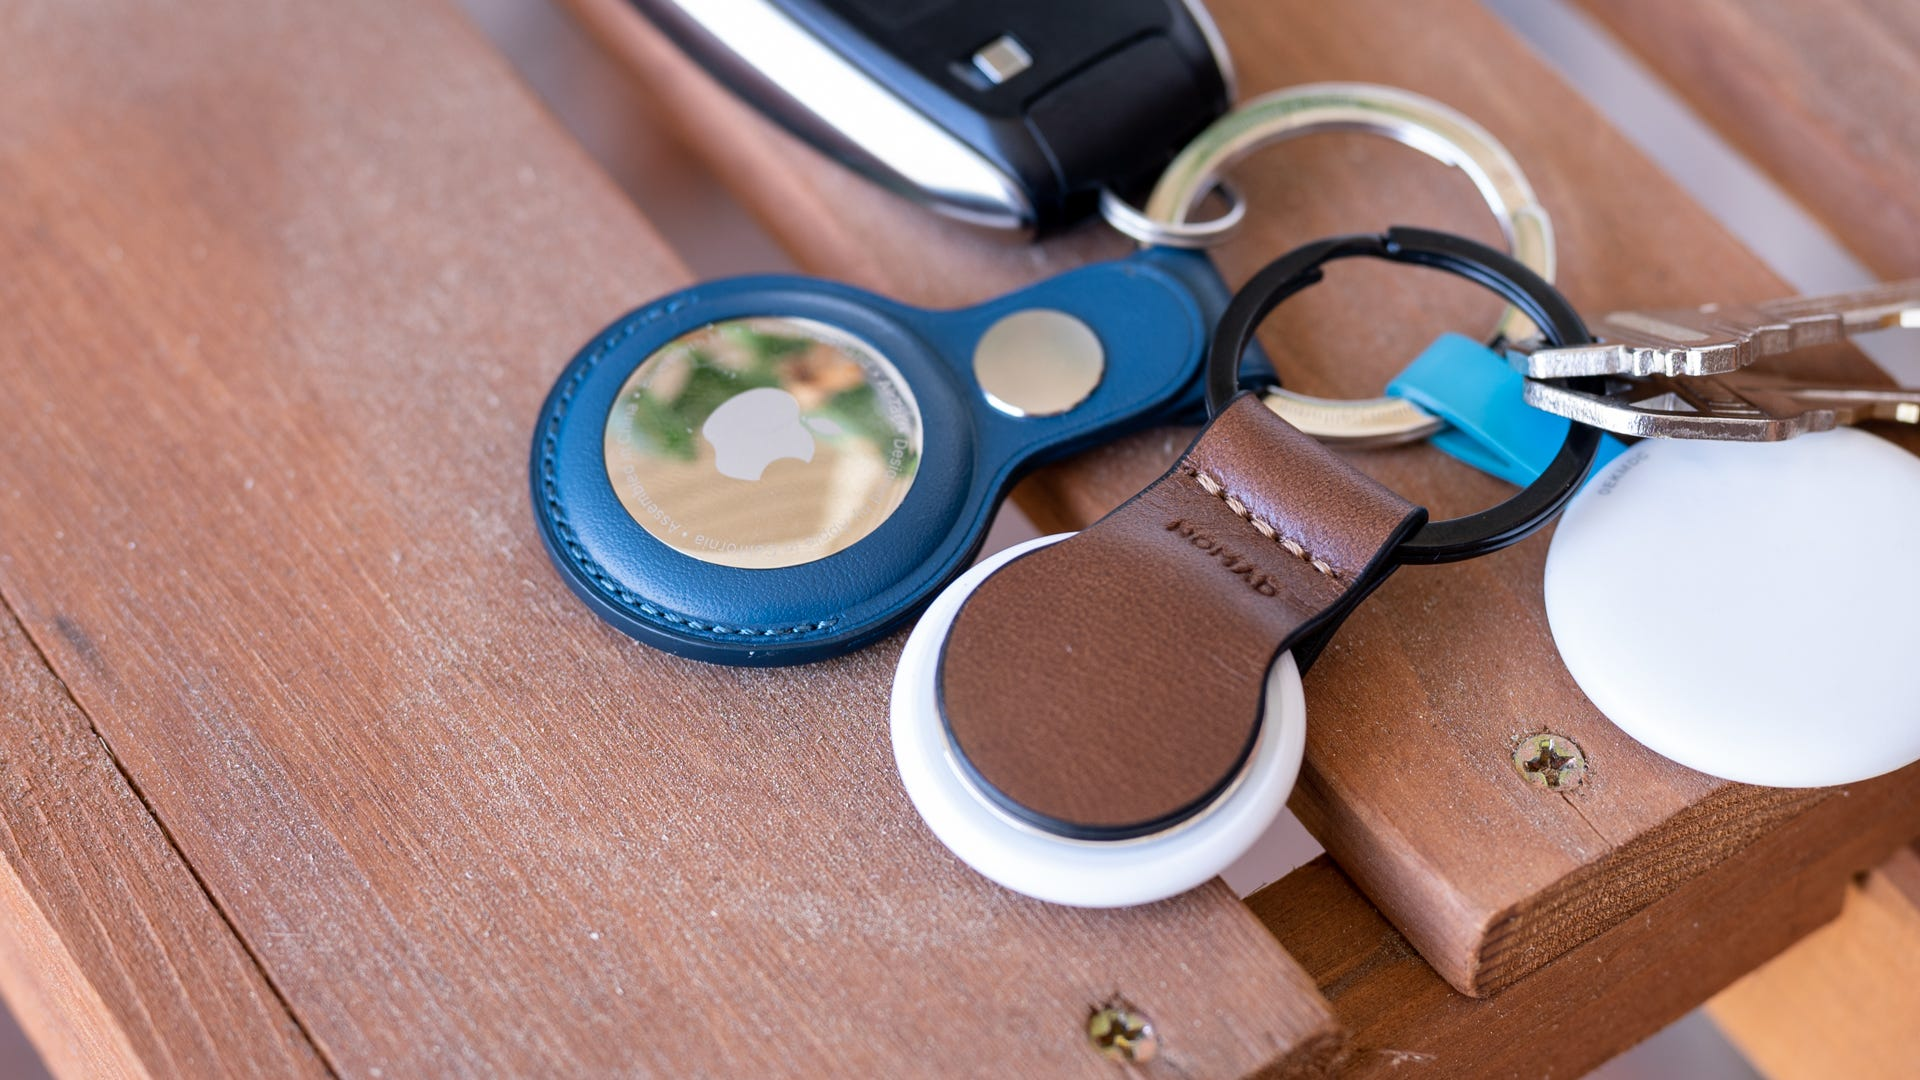 Nomad AirTag Leather Loop vs Apple accessory